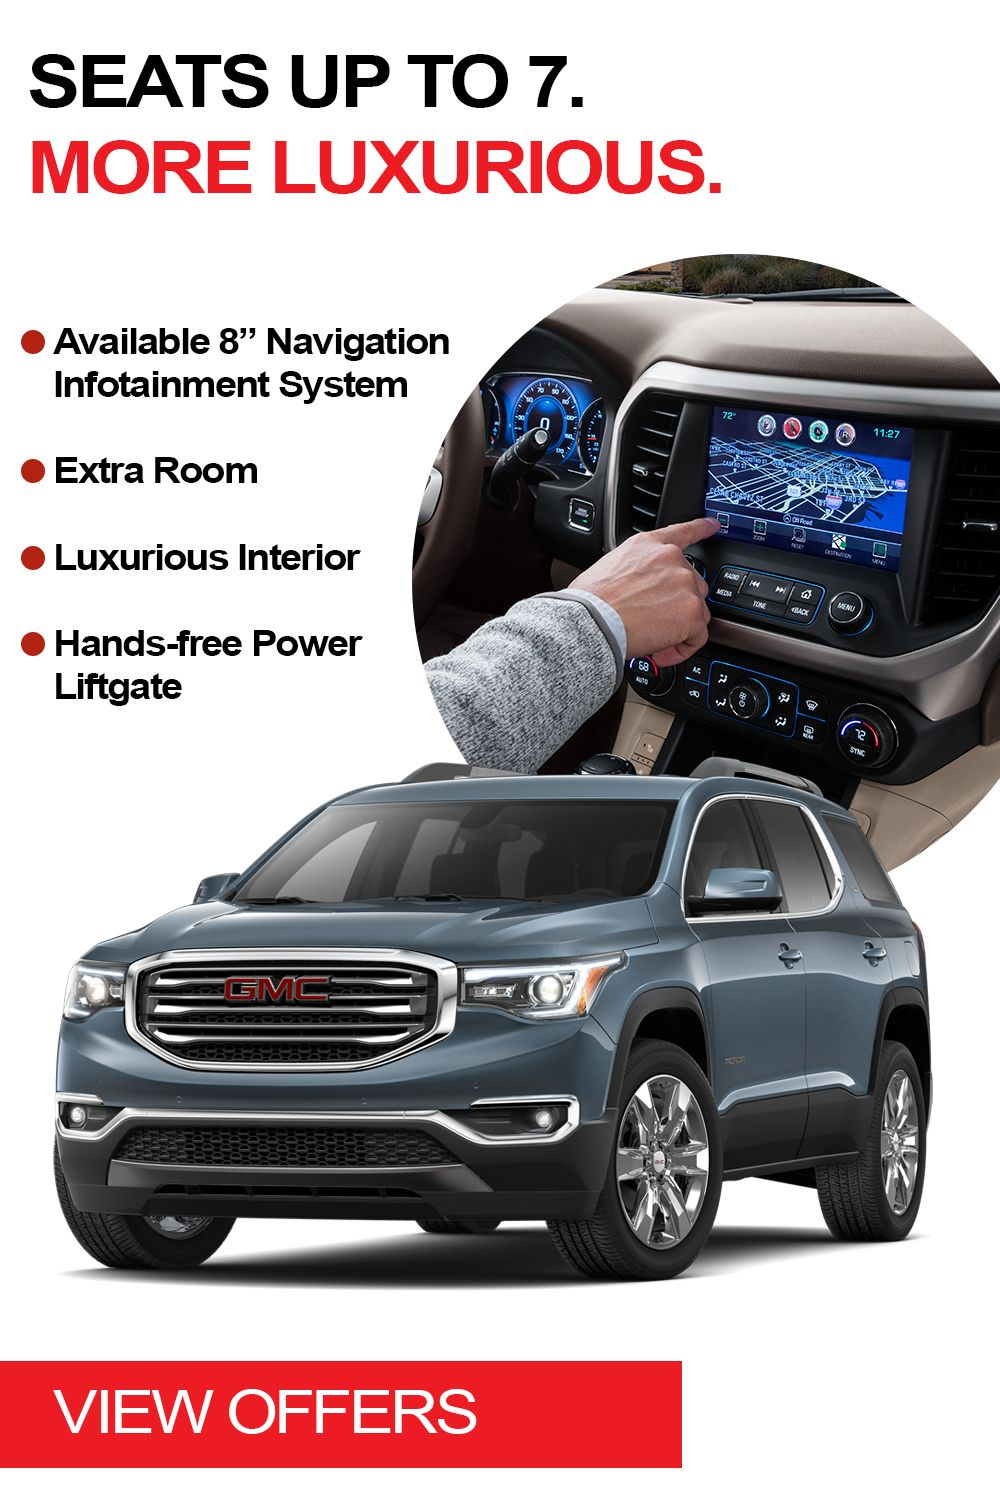 The New Gmc Acadia Has The Extra Room You Need With Seating For